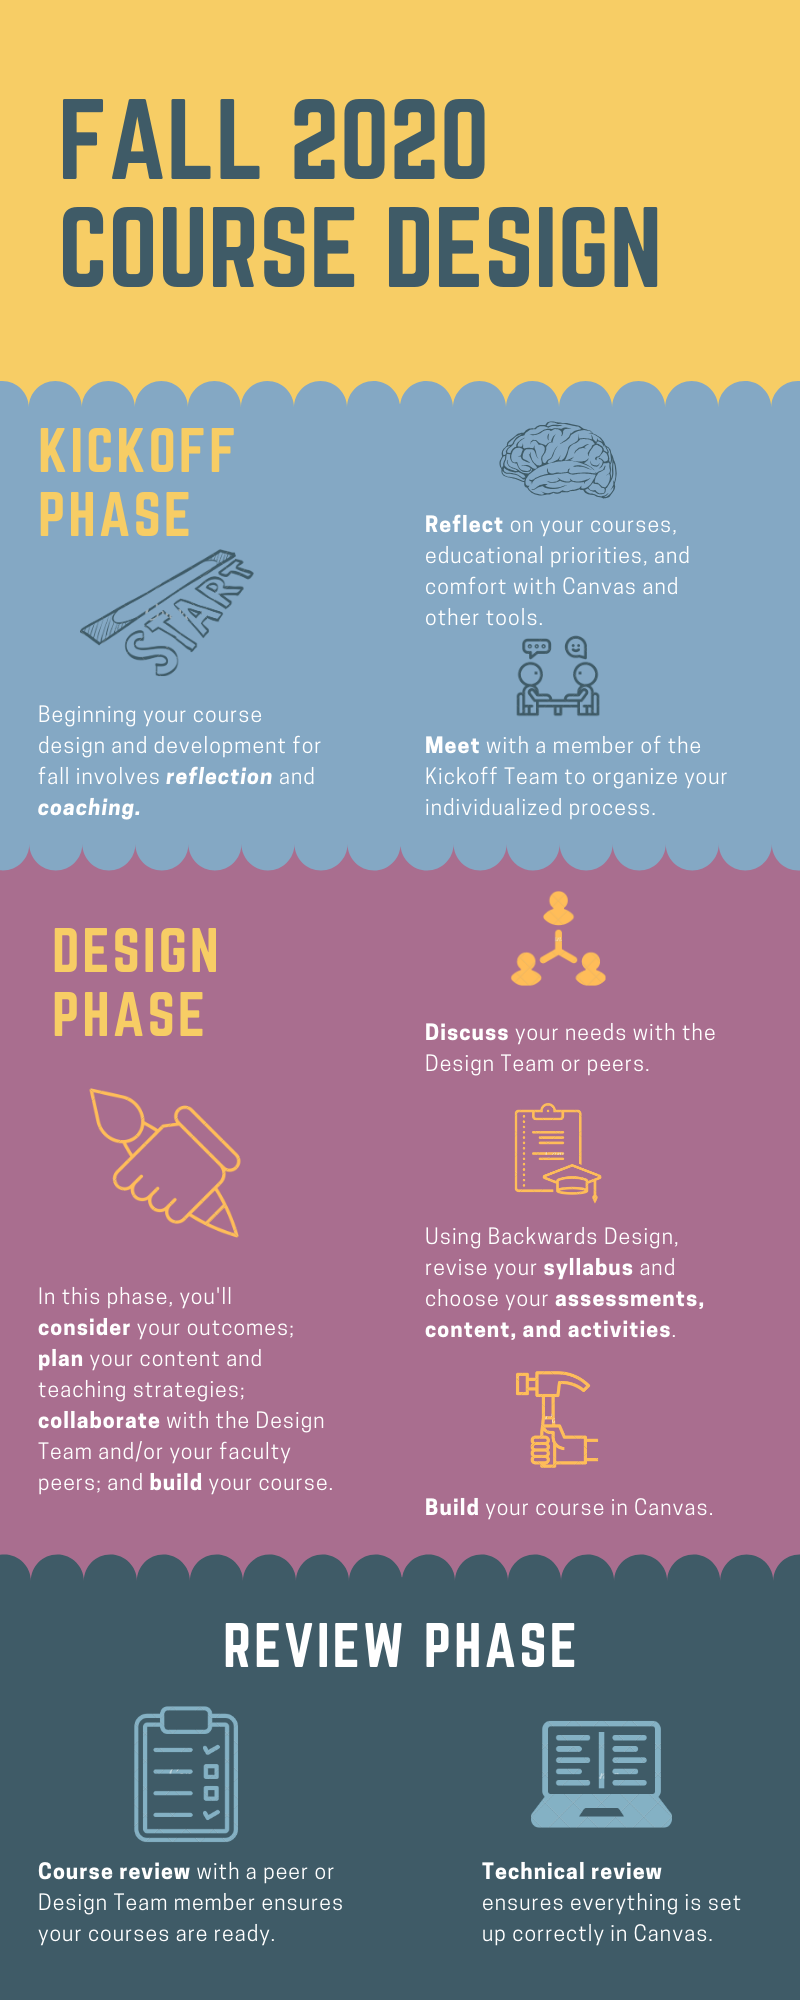 Infographic describing three phases of the ramp-up: Kickoff, Design, and Review. The Kickoff Phase includes reflection and meeting with the Kickoff Team. The Design Phase includes consulting with peer or CLT helpers and building the course(s). The Review Phase includes both course review and technical review for each course.